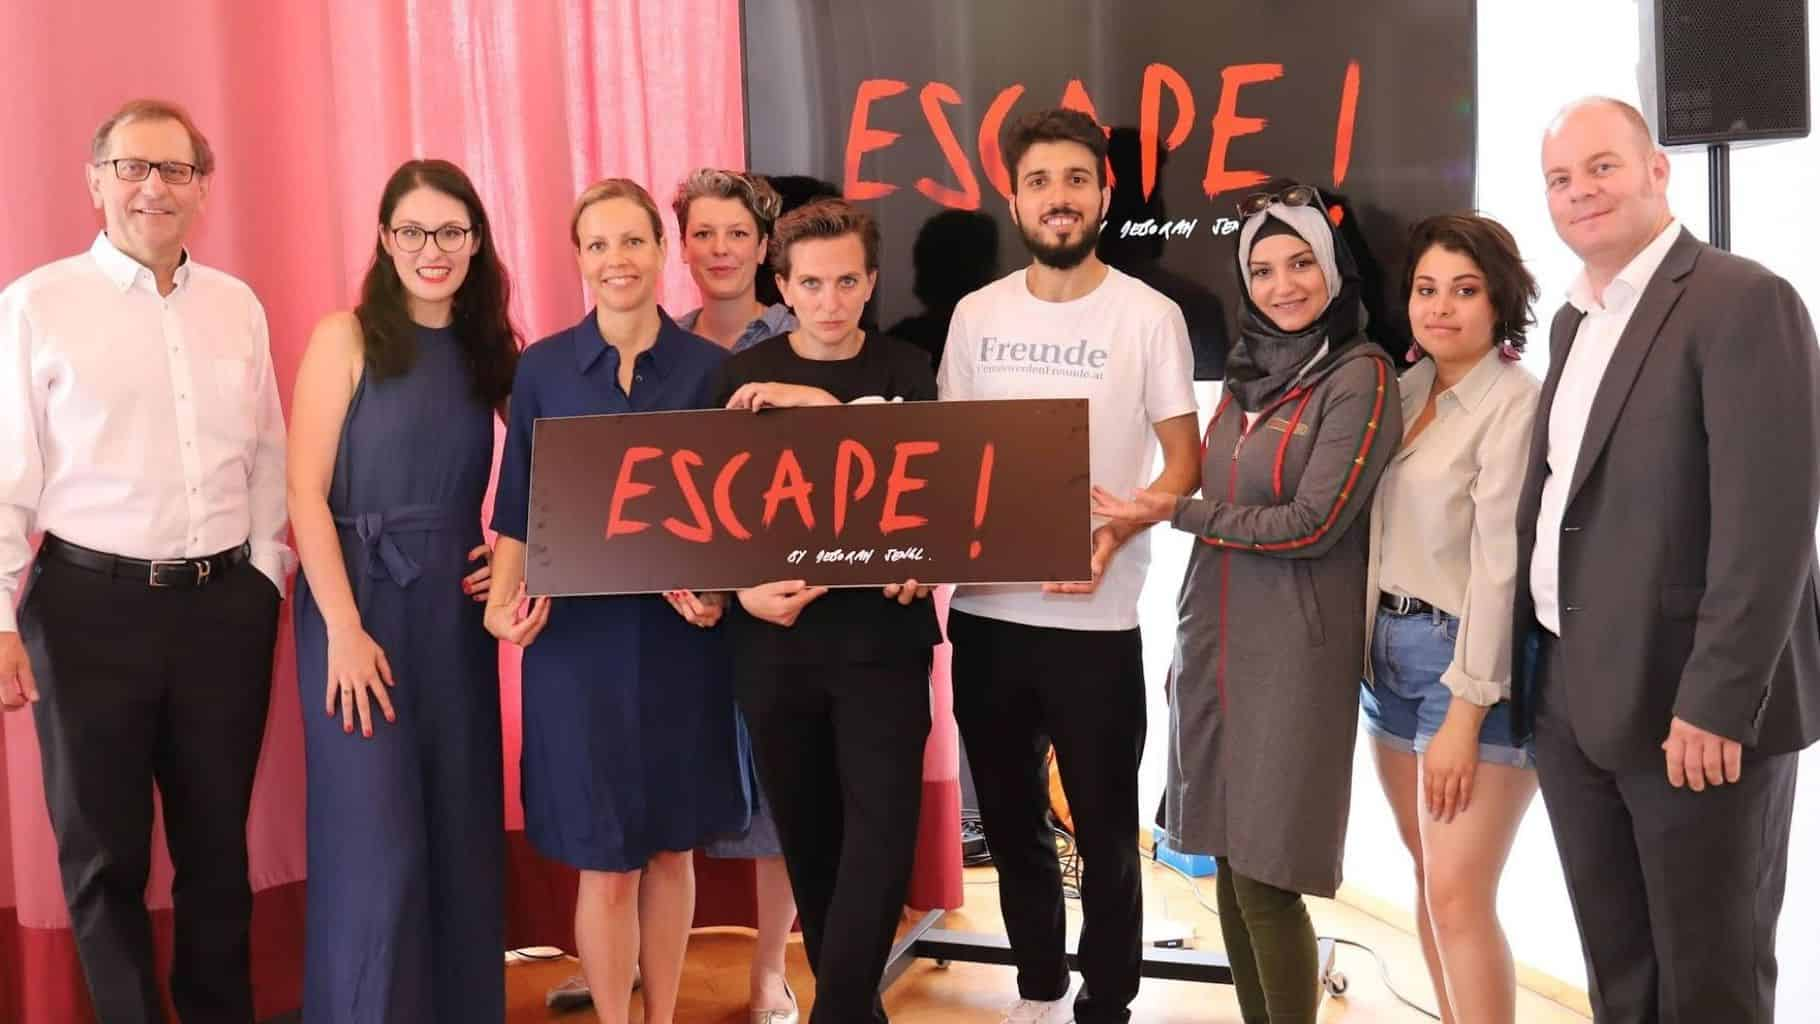 Podcast Salongespräche: Escape! by Deborah Sengl